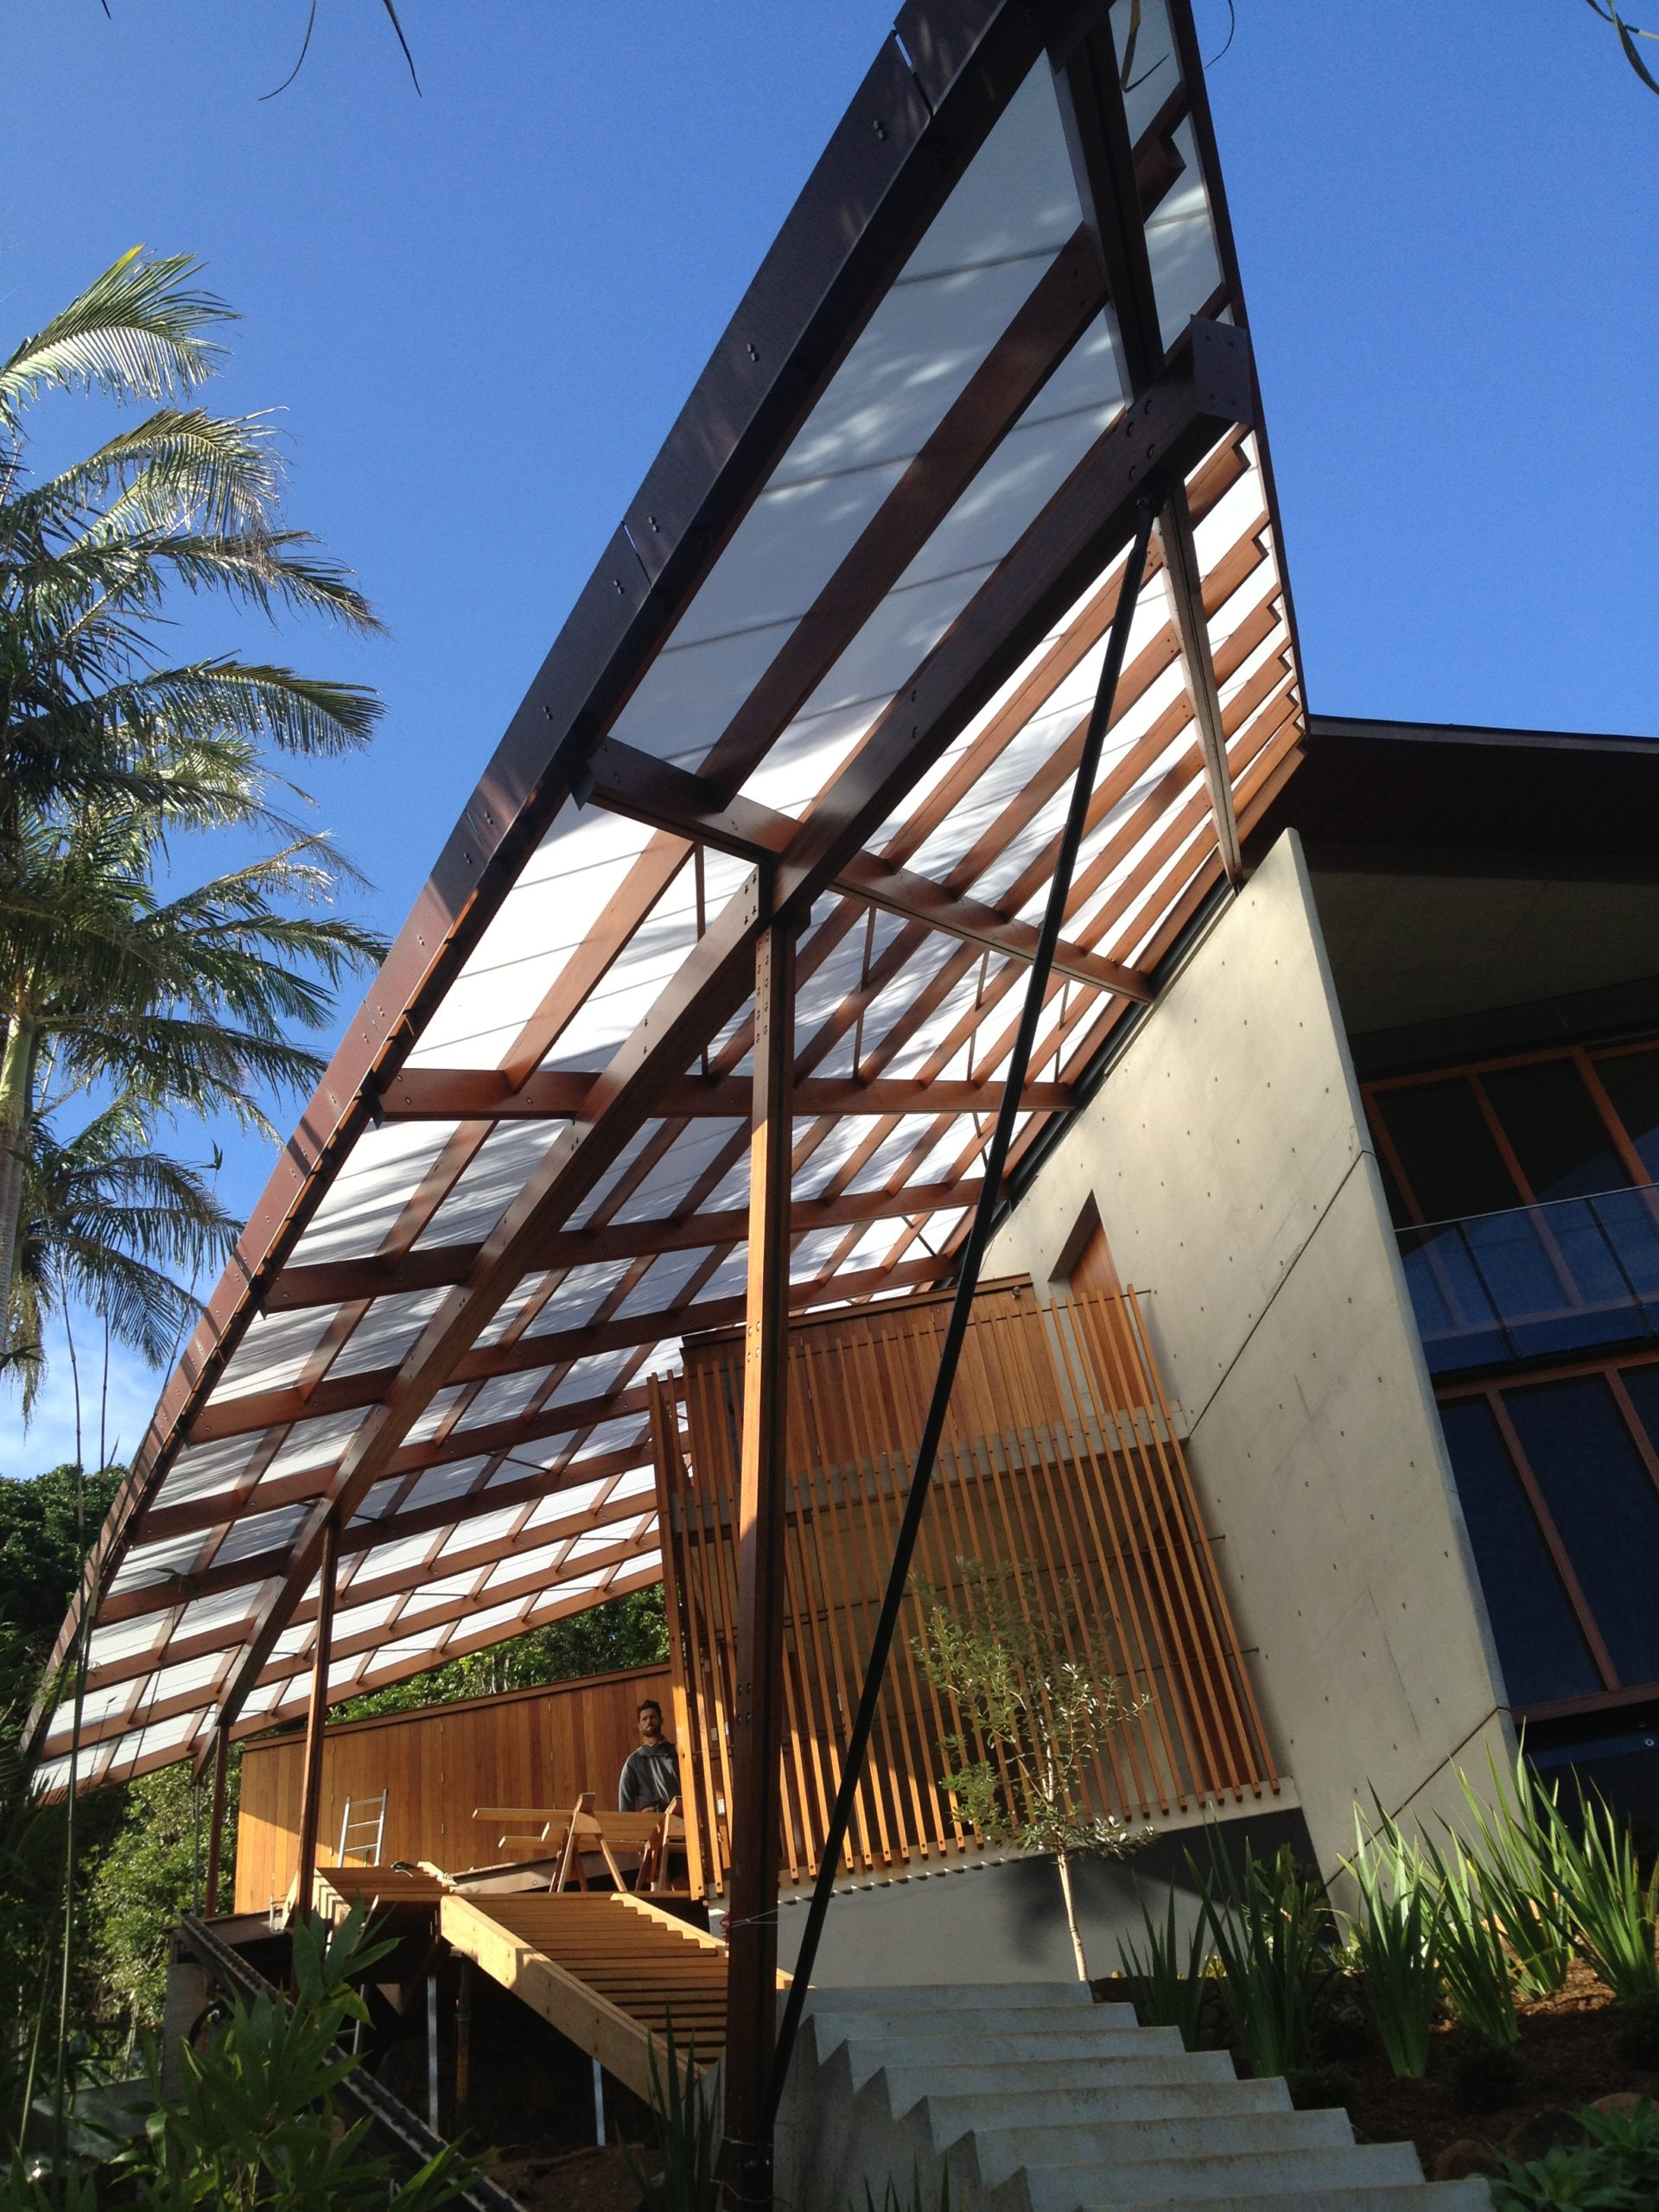 outdoor.others.12 mm.ice.australia.Byron Bay Wing House7